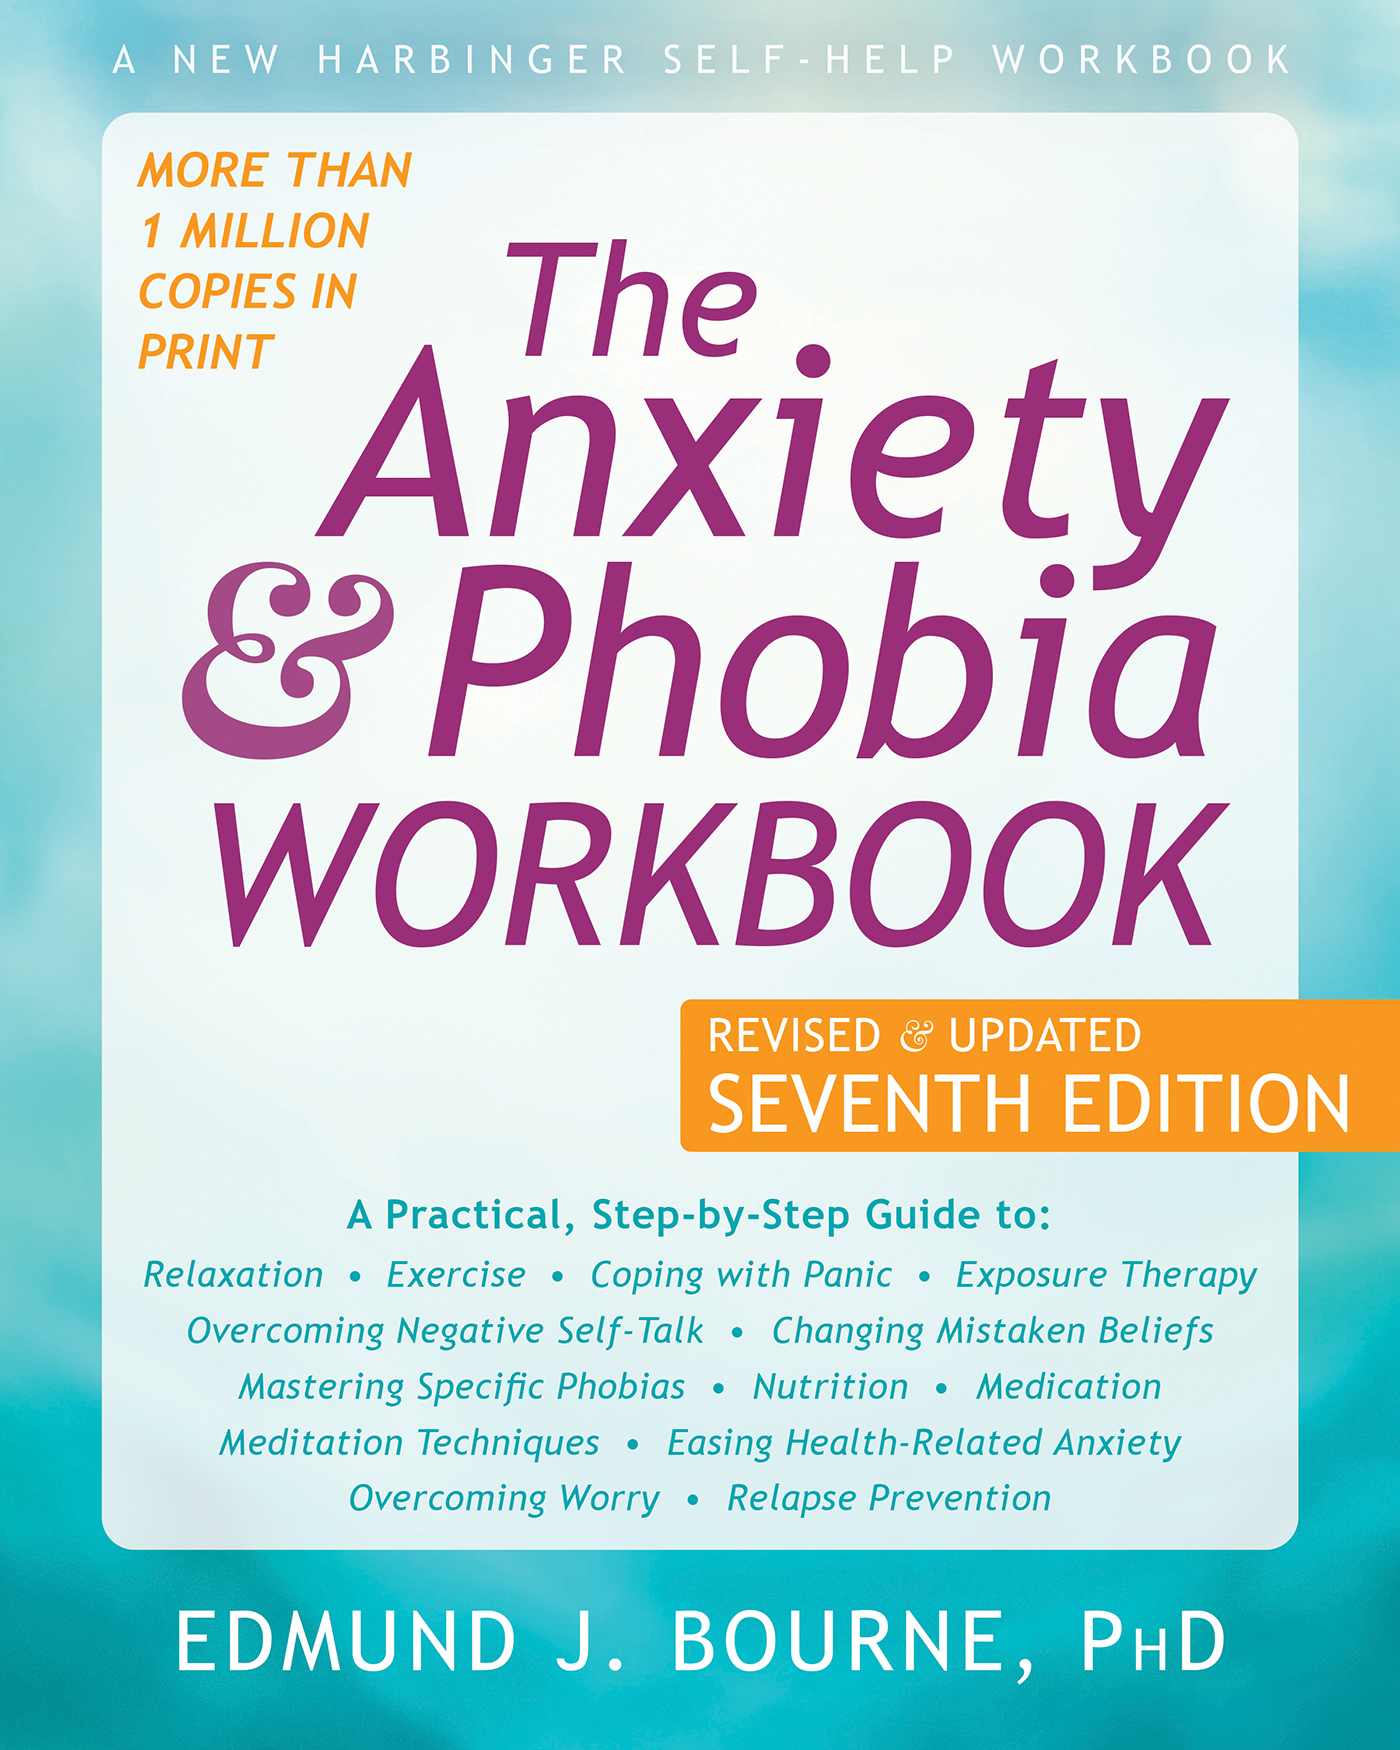 The Anxiety and Phobia Workbook